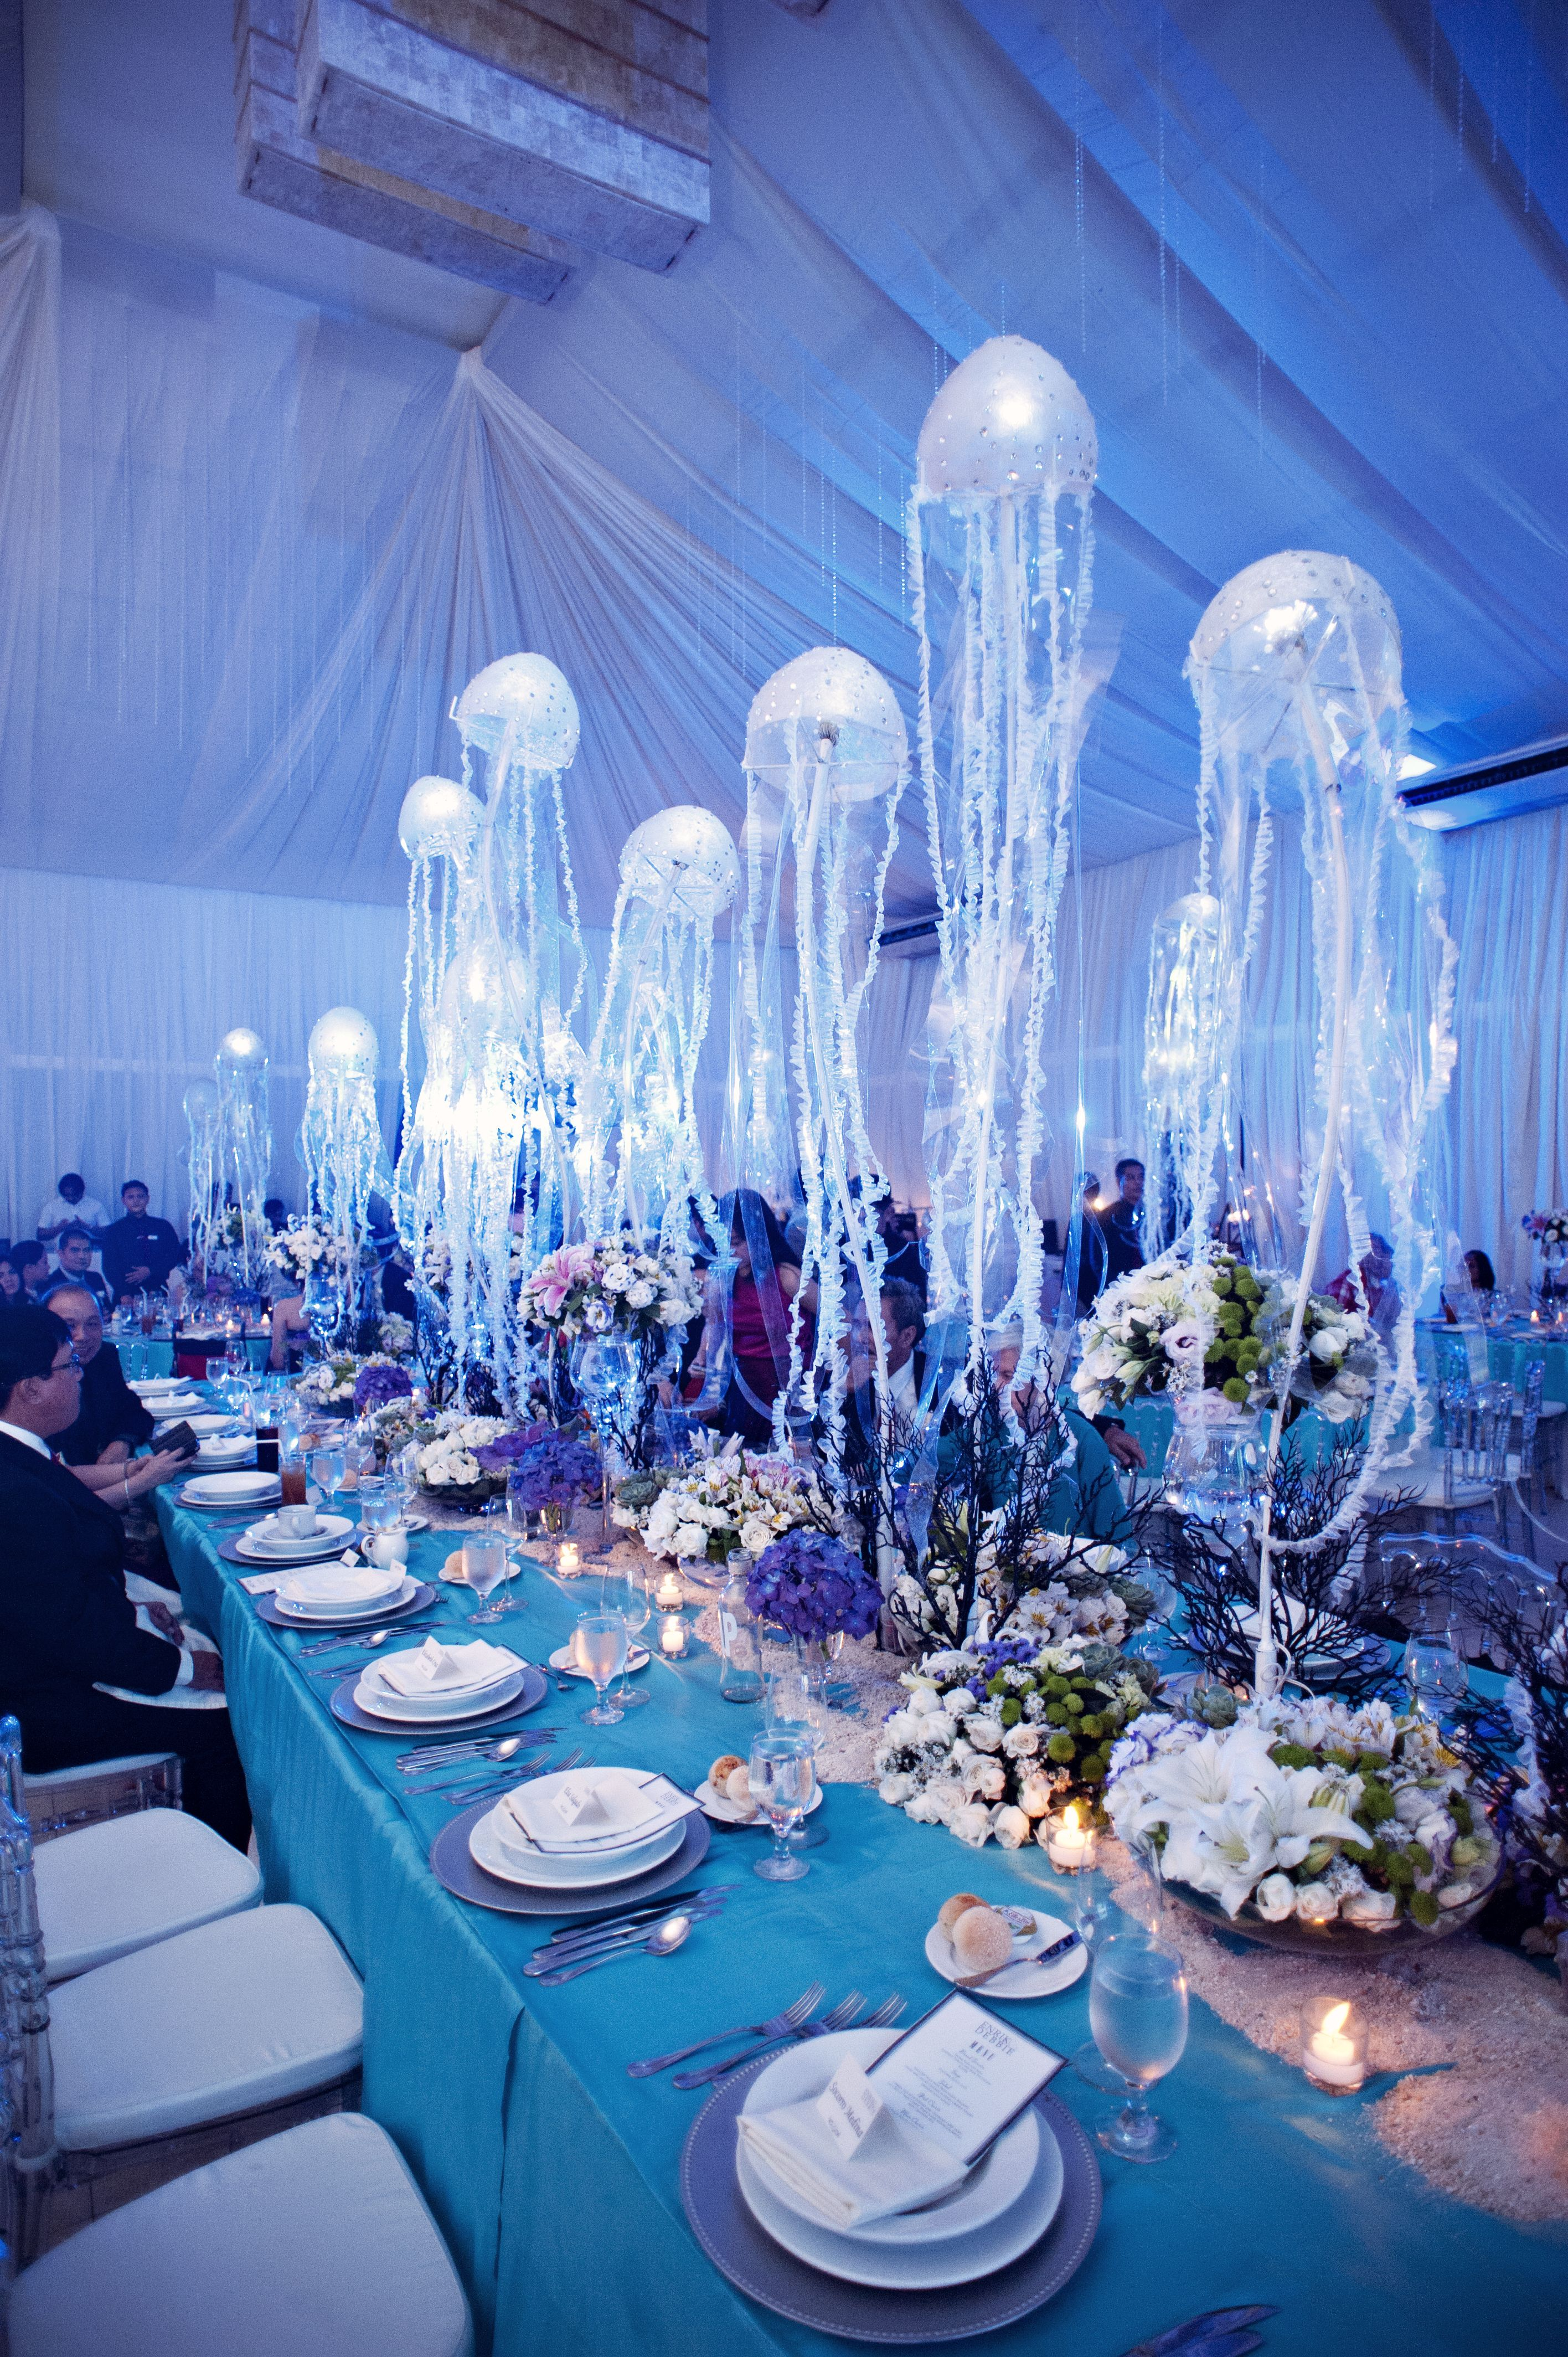 Ocean Theme Decorating Ideas Under The Sea Wedding Motif With Hanging Jellyfish Table